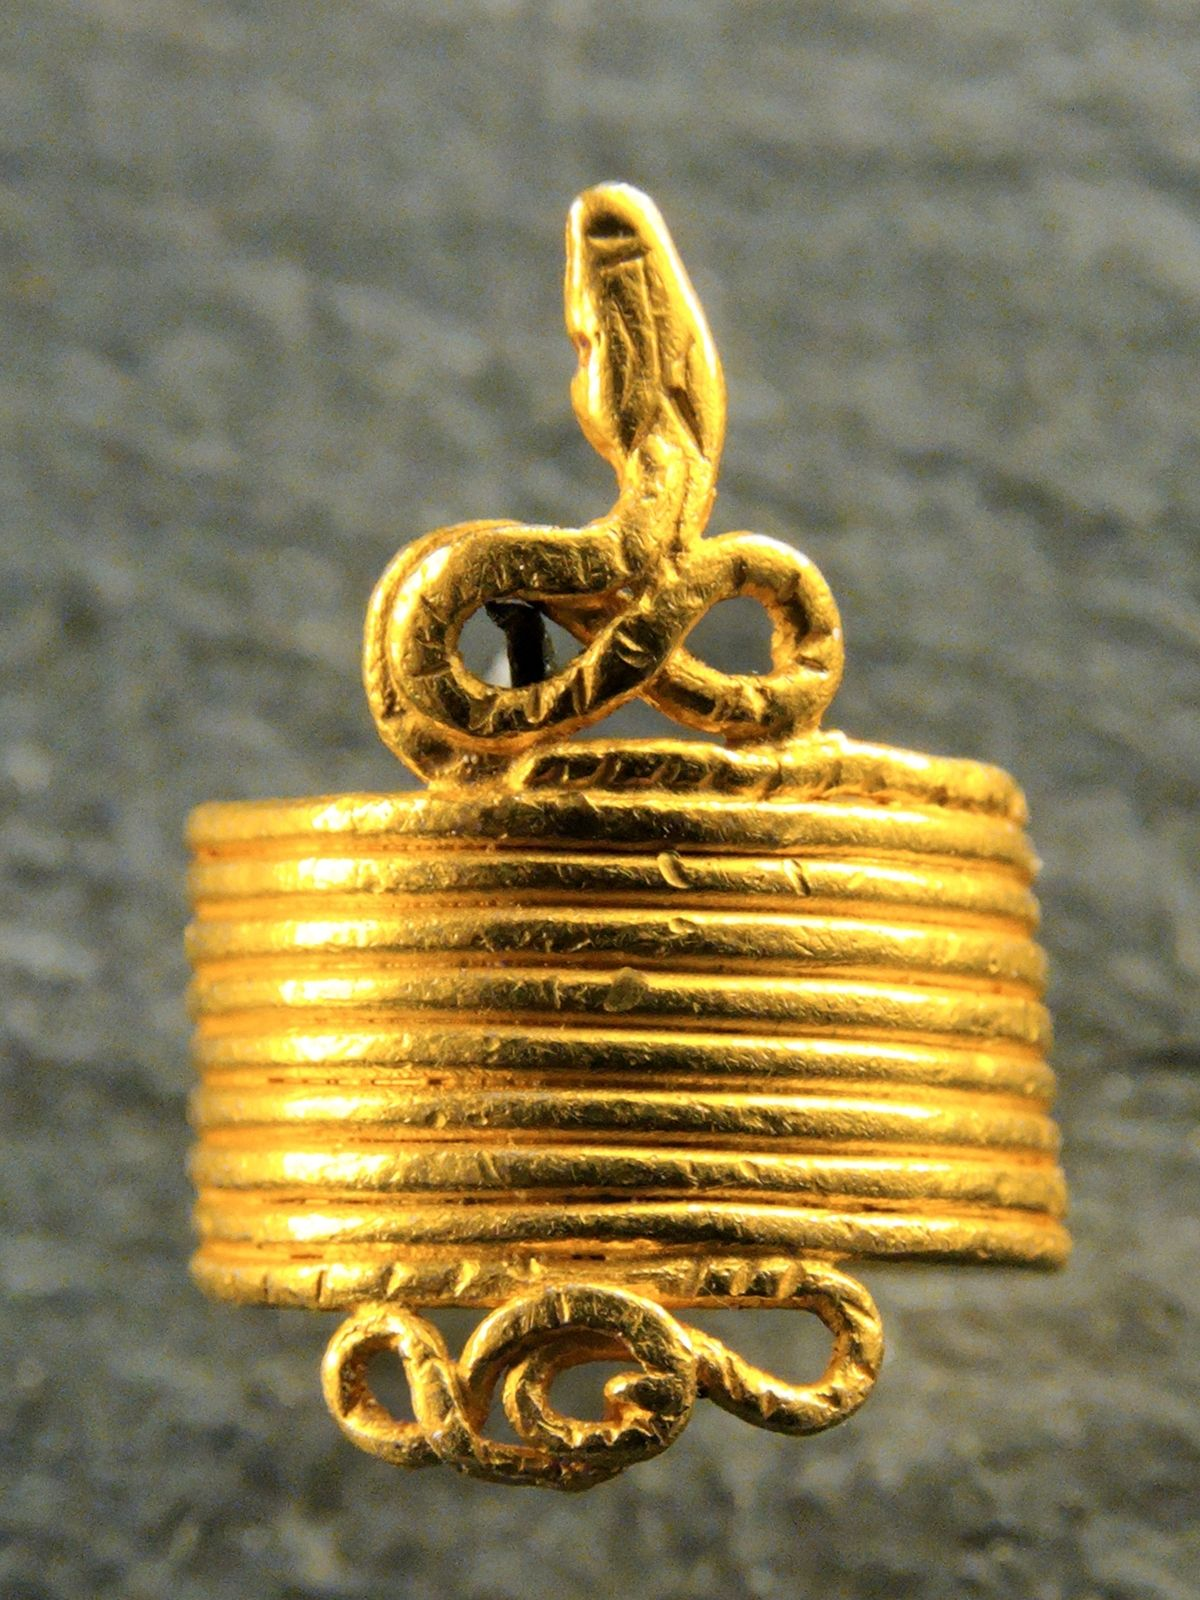 An ancient Greek snake-shaped ring dated to the 4th century BC.